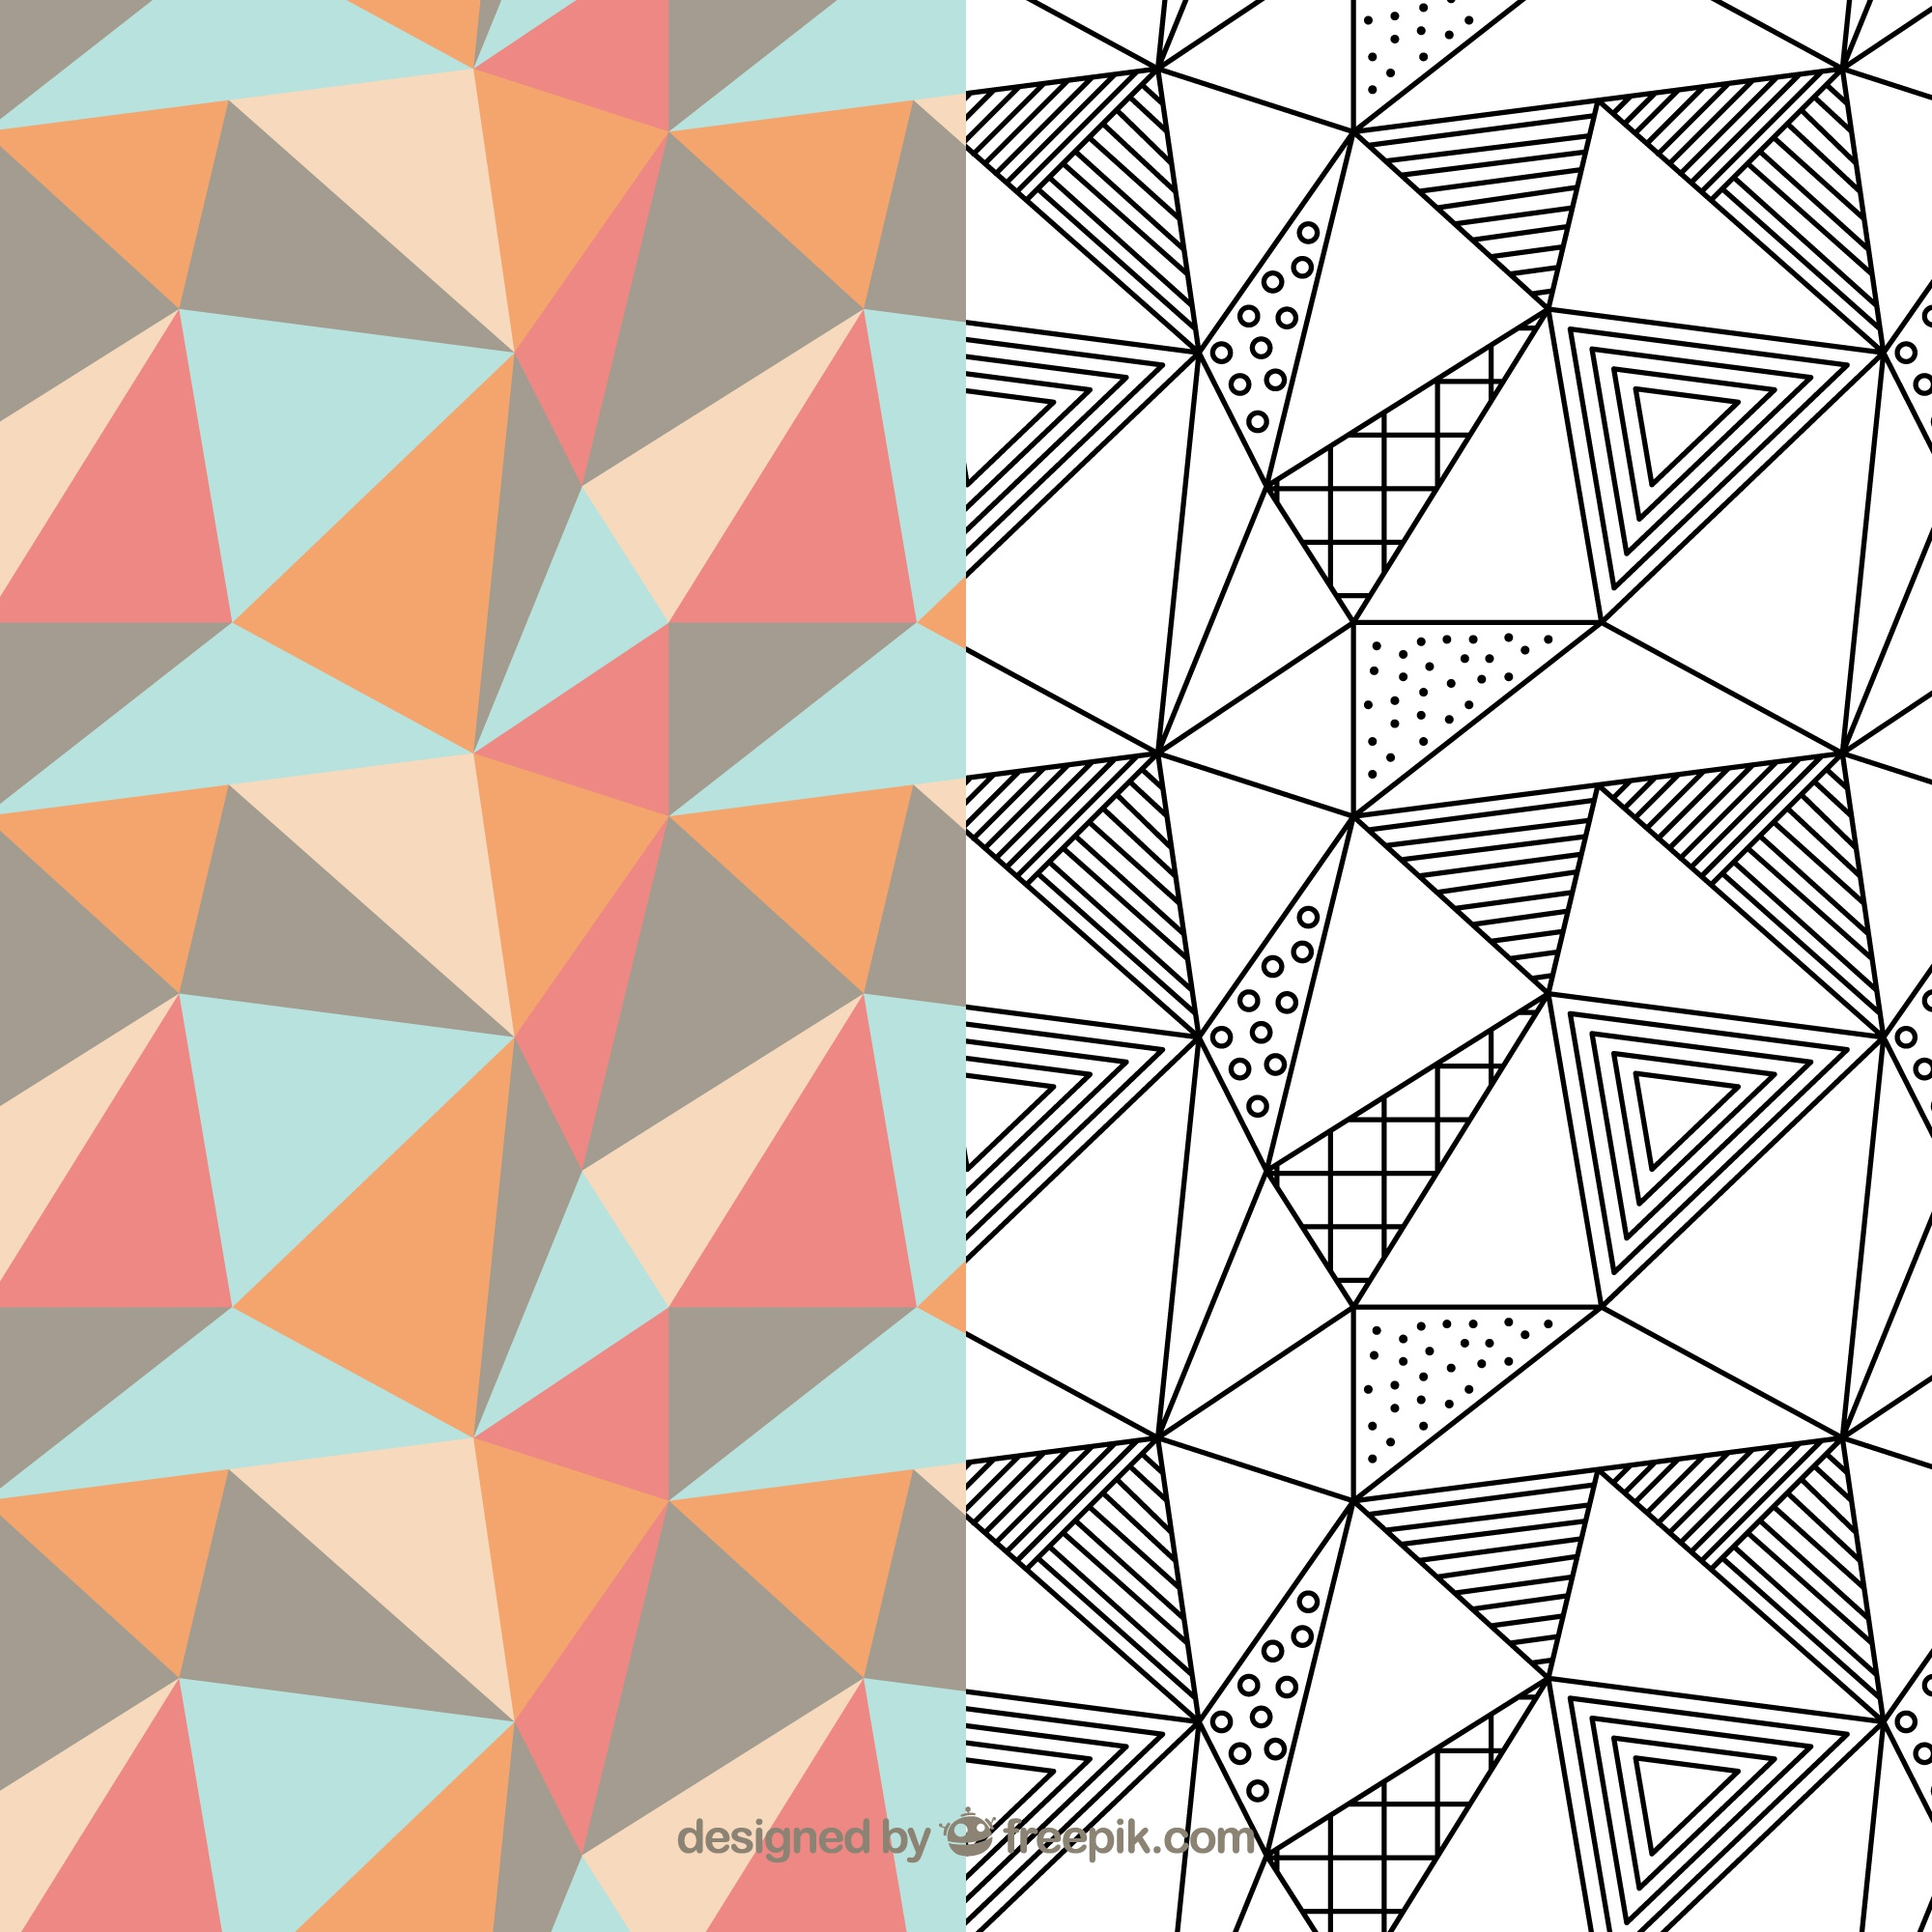 Geometrisches Muster-Pack